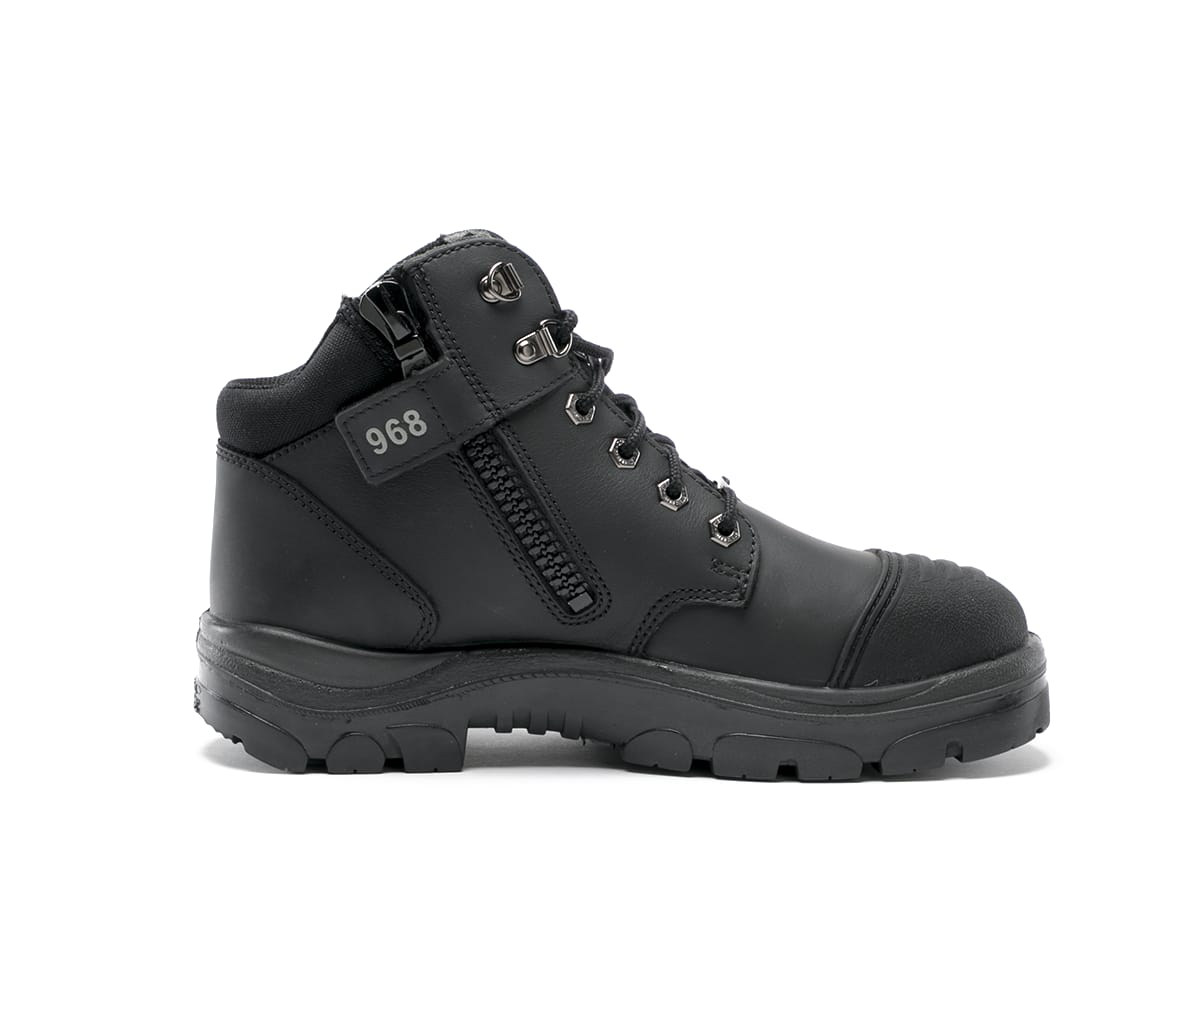 Parkes Zip - Black